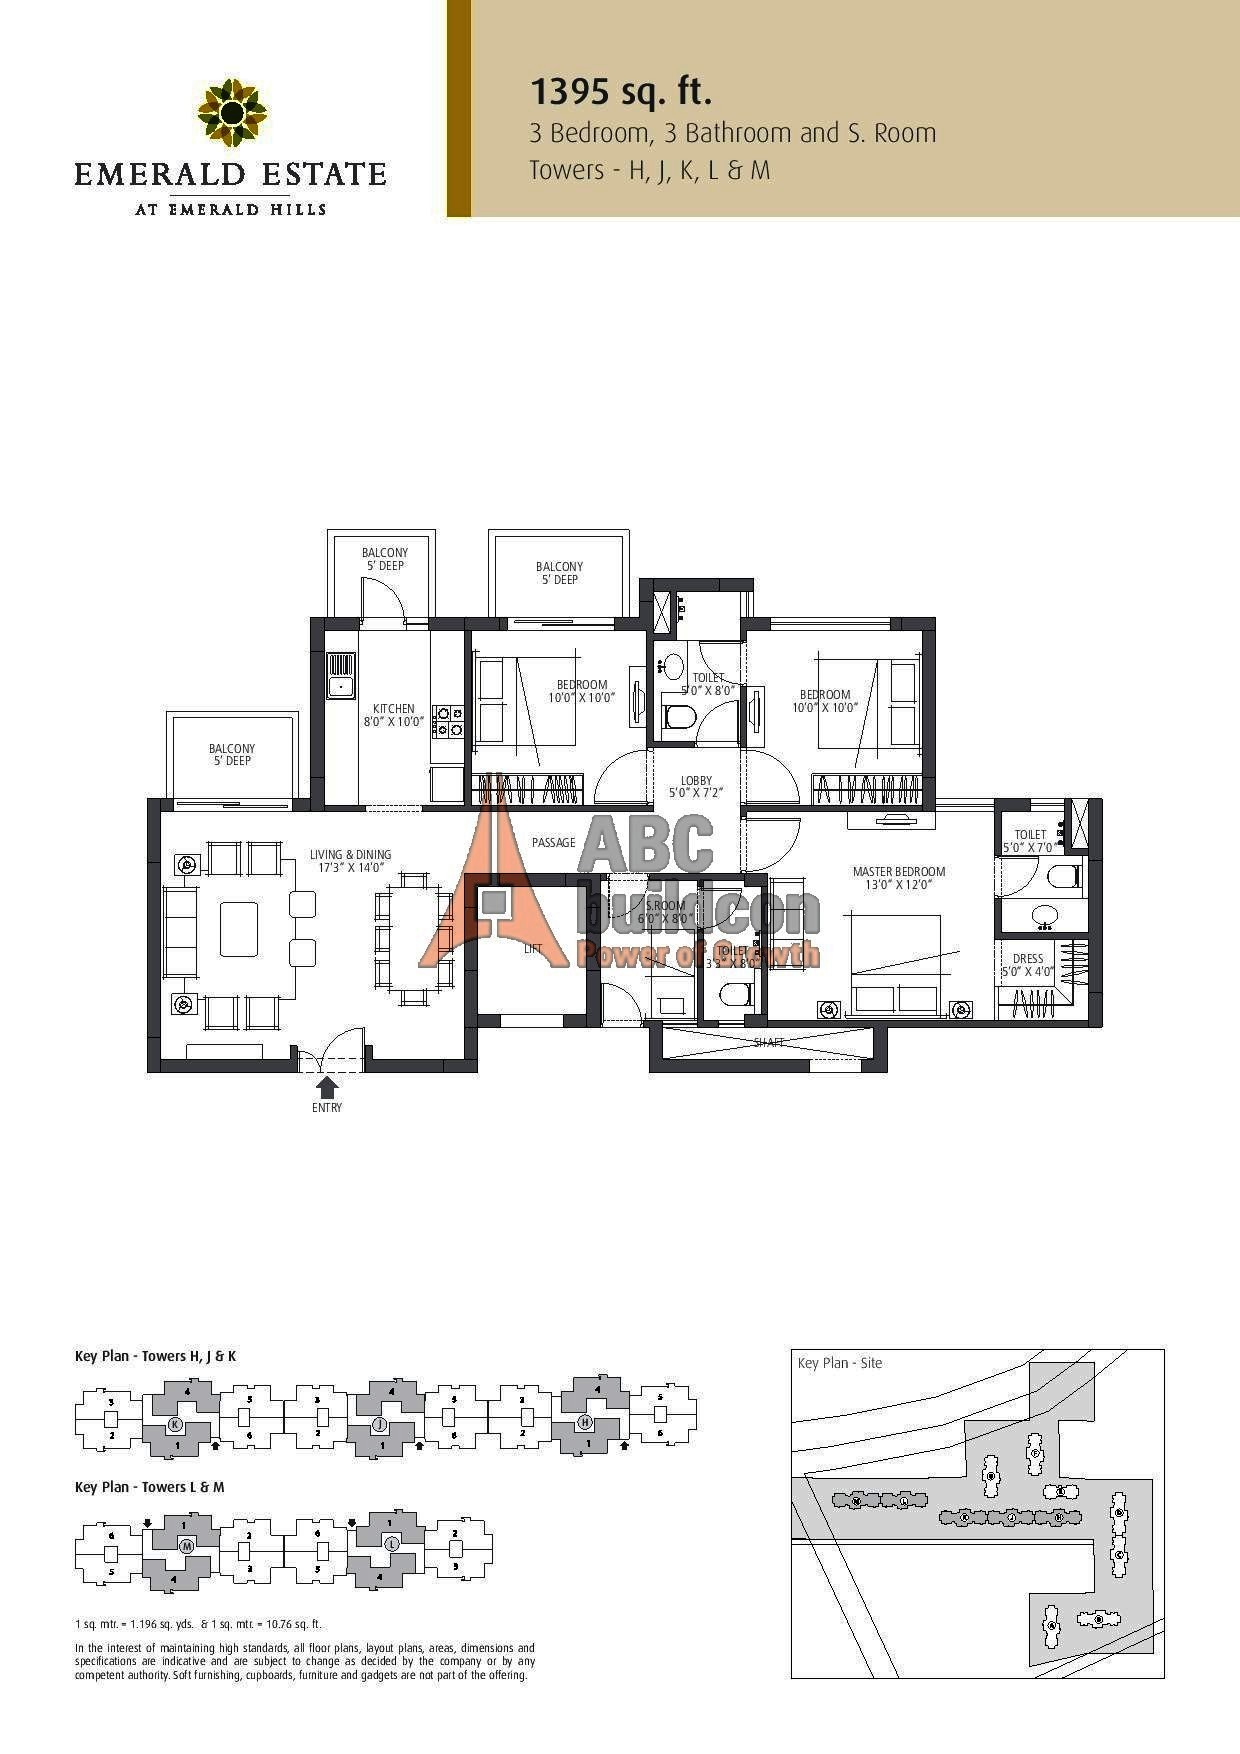 3 BHK + S.R 1395 Sq. Ft.